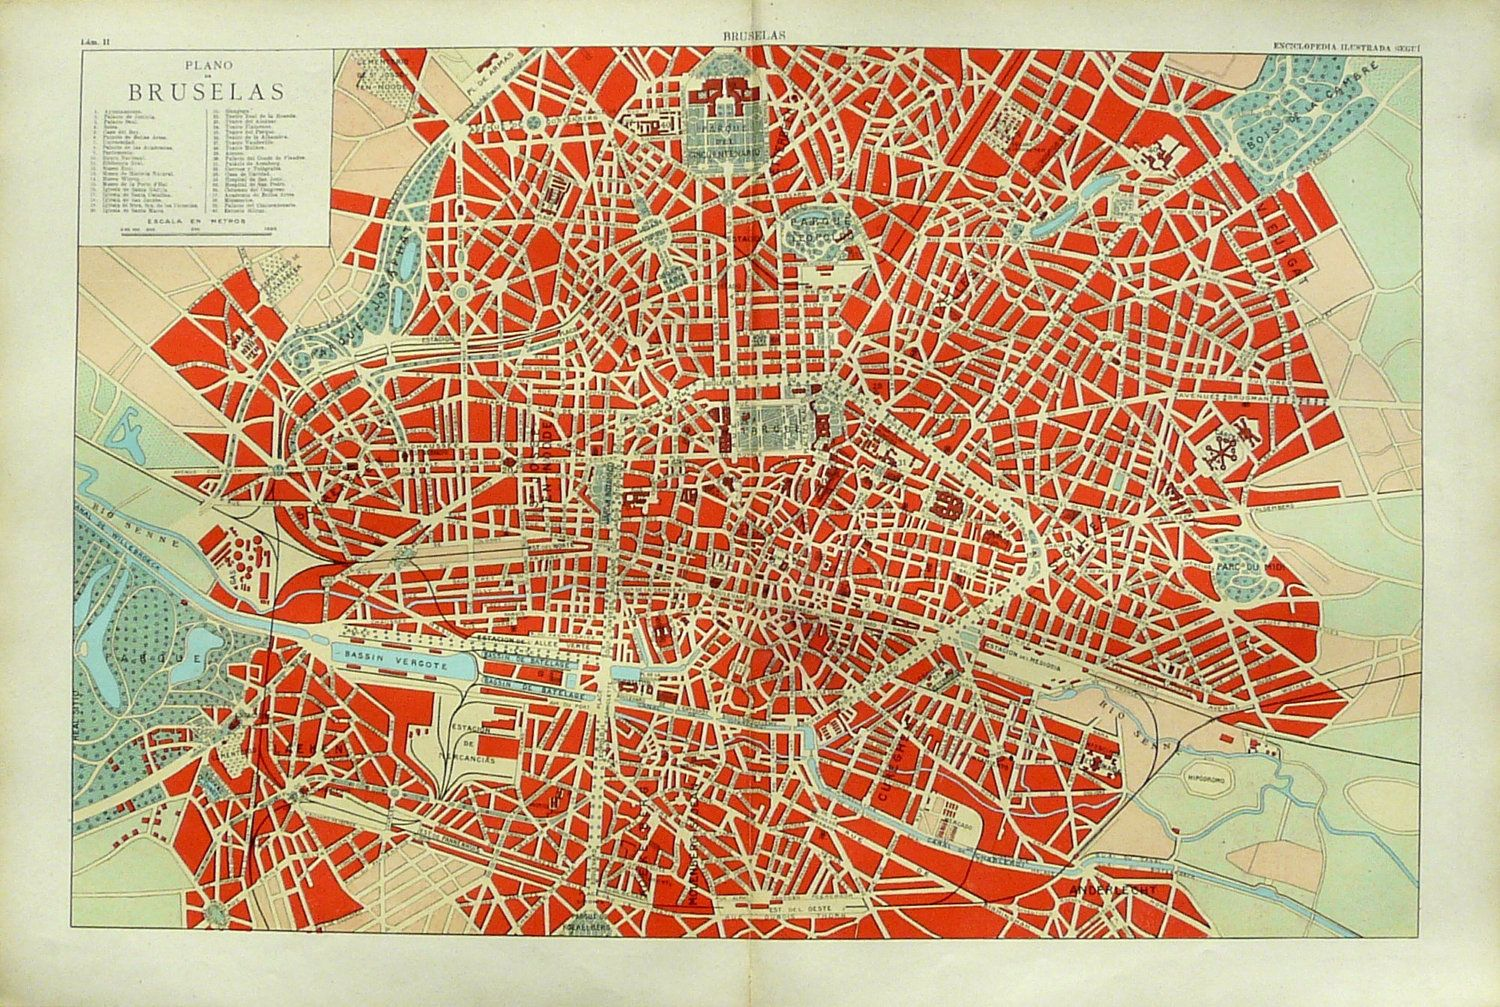 1900 antique rare city map of brussels belgium 112 years old map